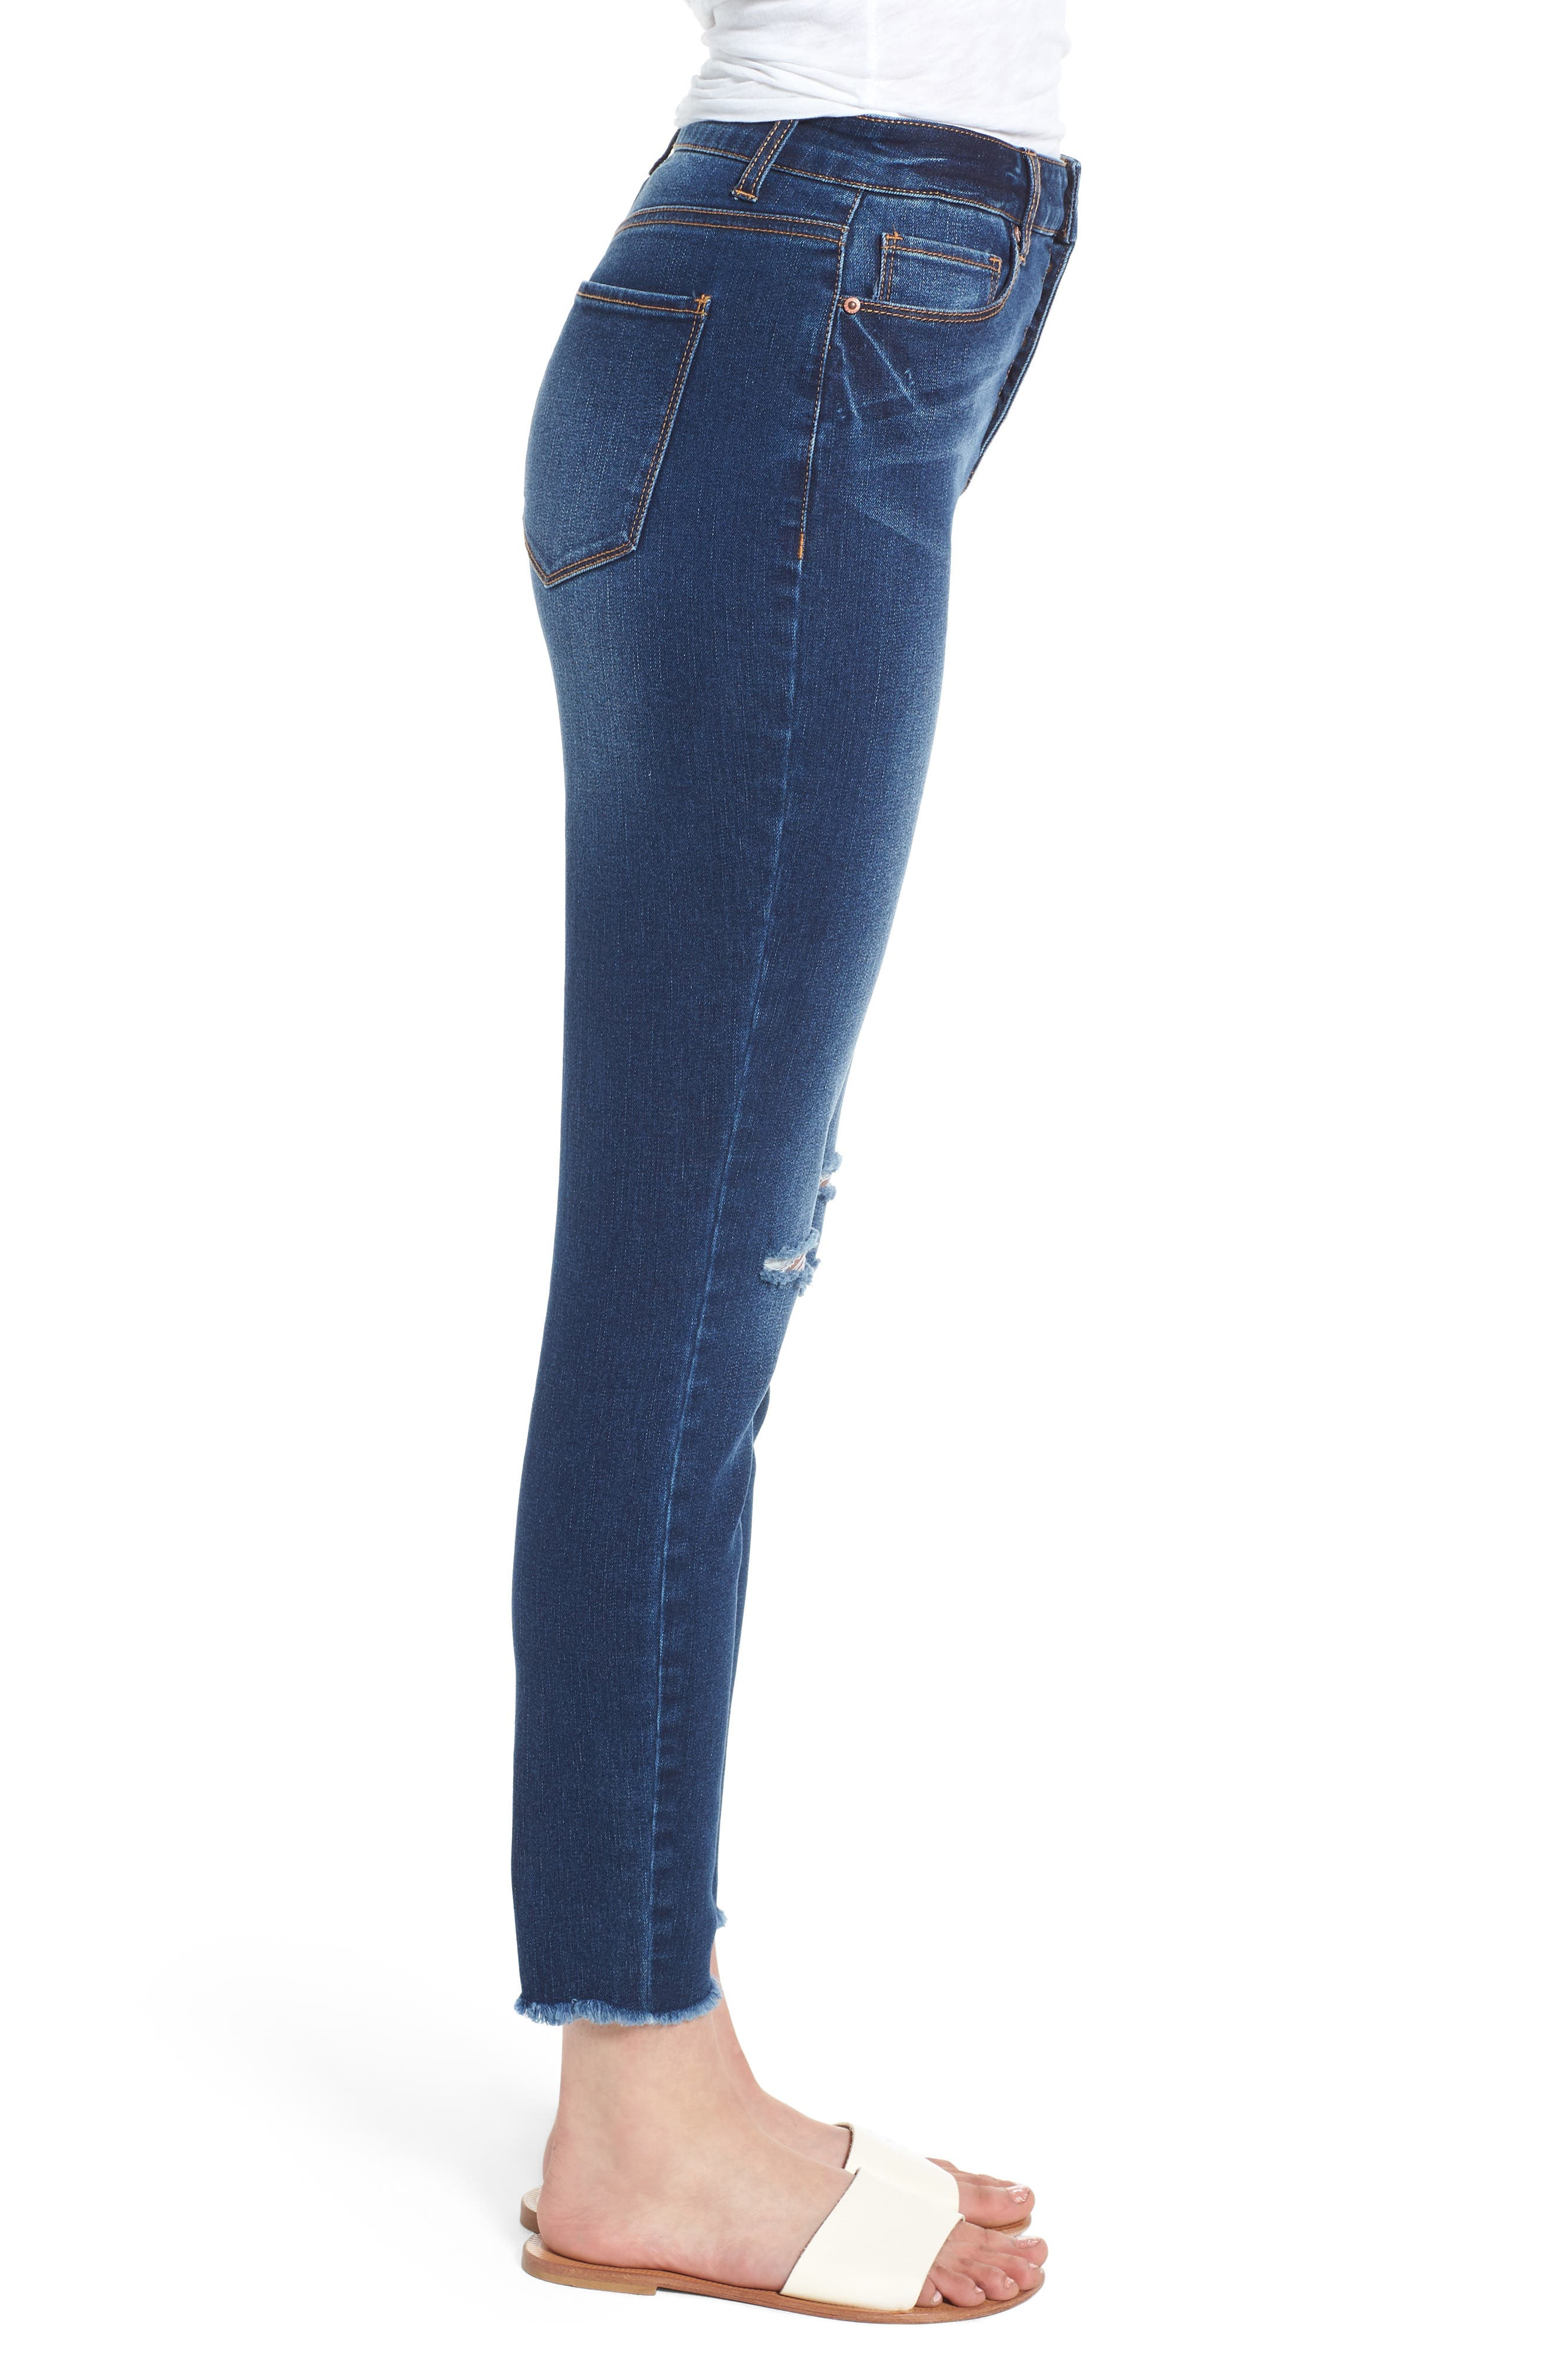 TINSEL, Ripped High Waist Ankle Skinny Jeans, Alternate thumbnail 4, color, DARK WASH